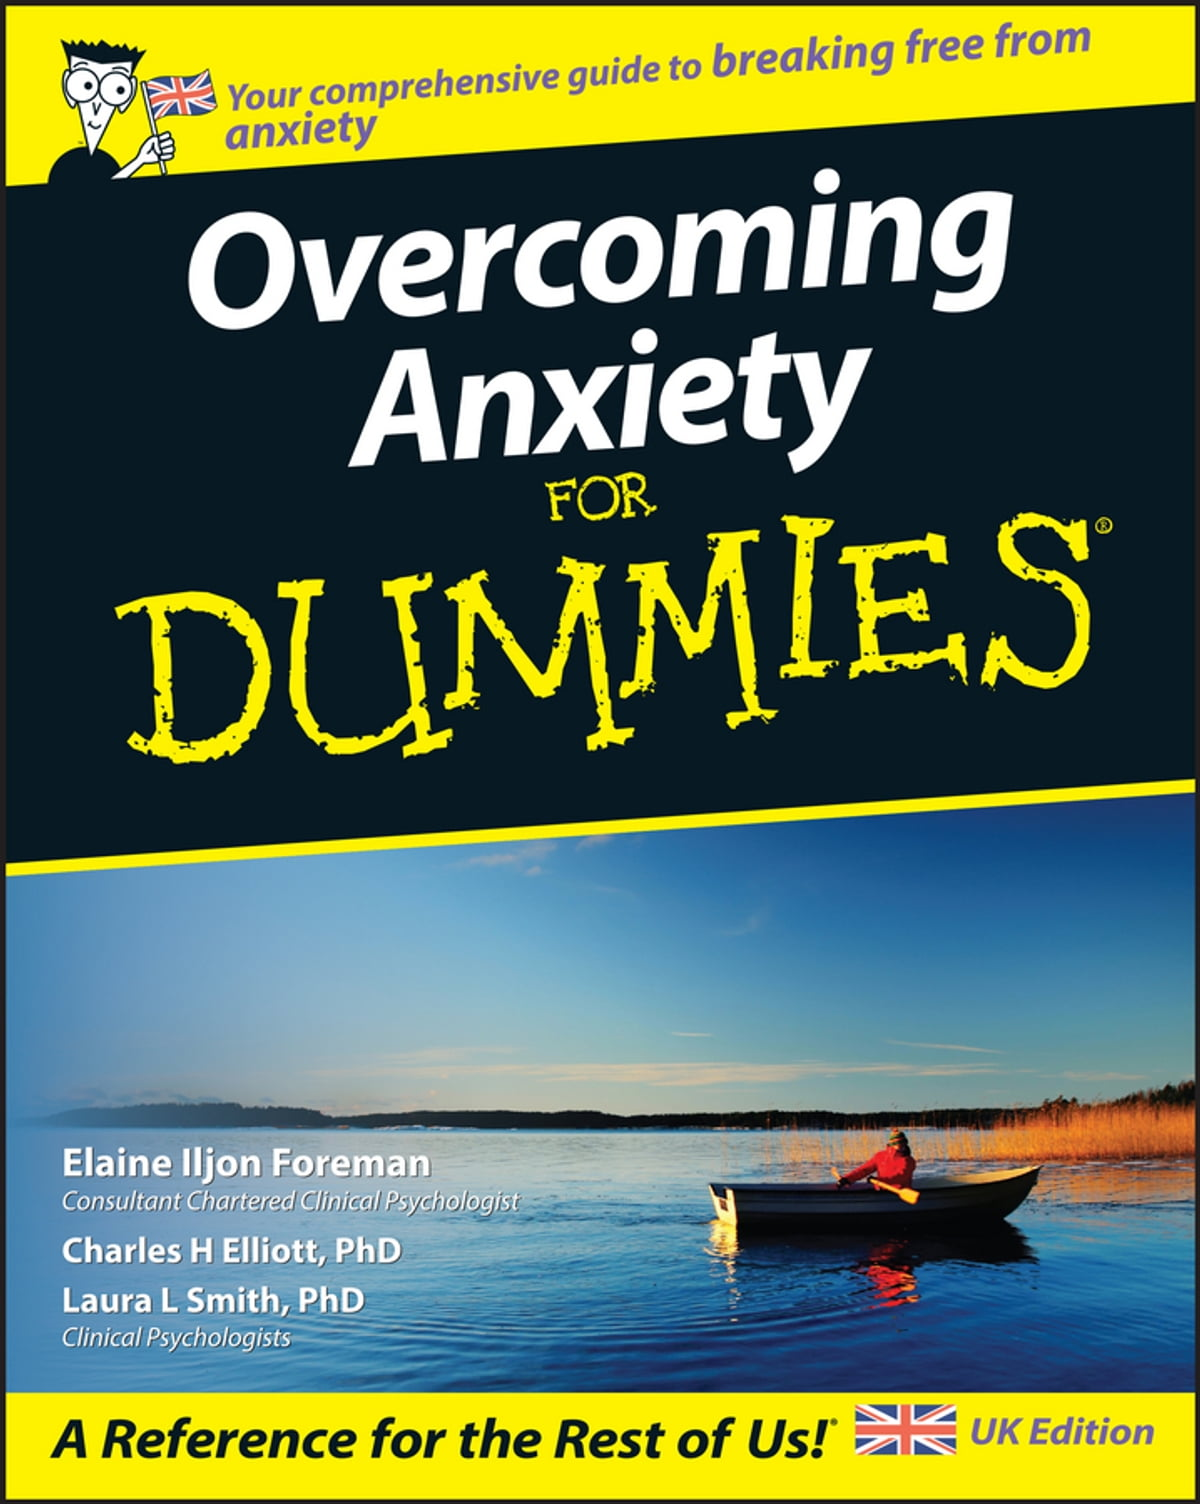 Overcoming anxiety for dummies ebook by elaine iljon foreman overcoming anxiety for dummies ebook by elaine iljon foreman 9781119998273 rakuten kobo fandeluxe PDF